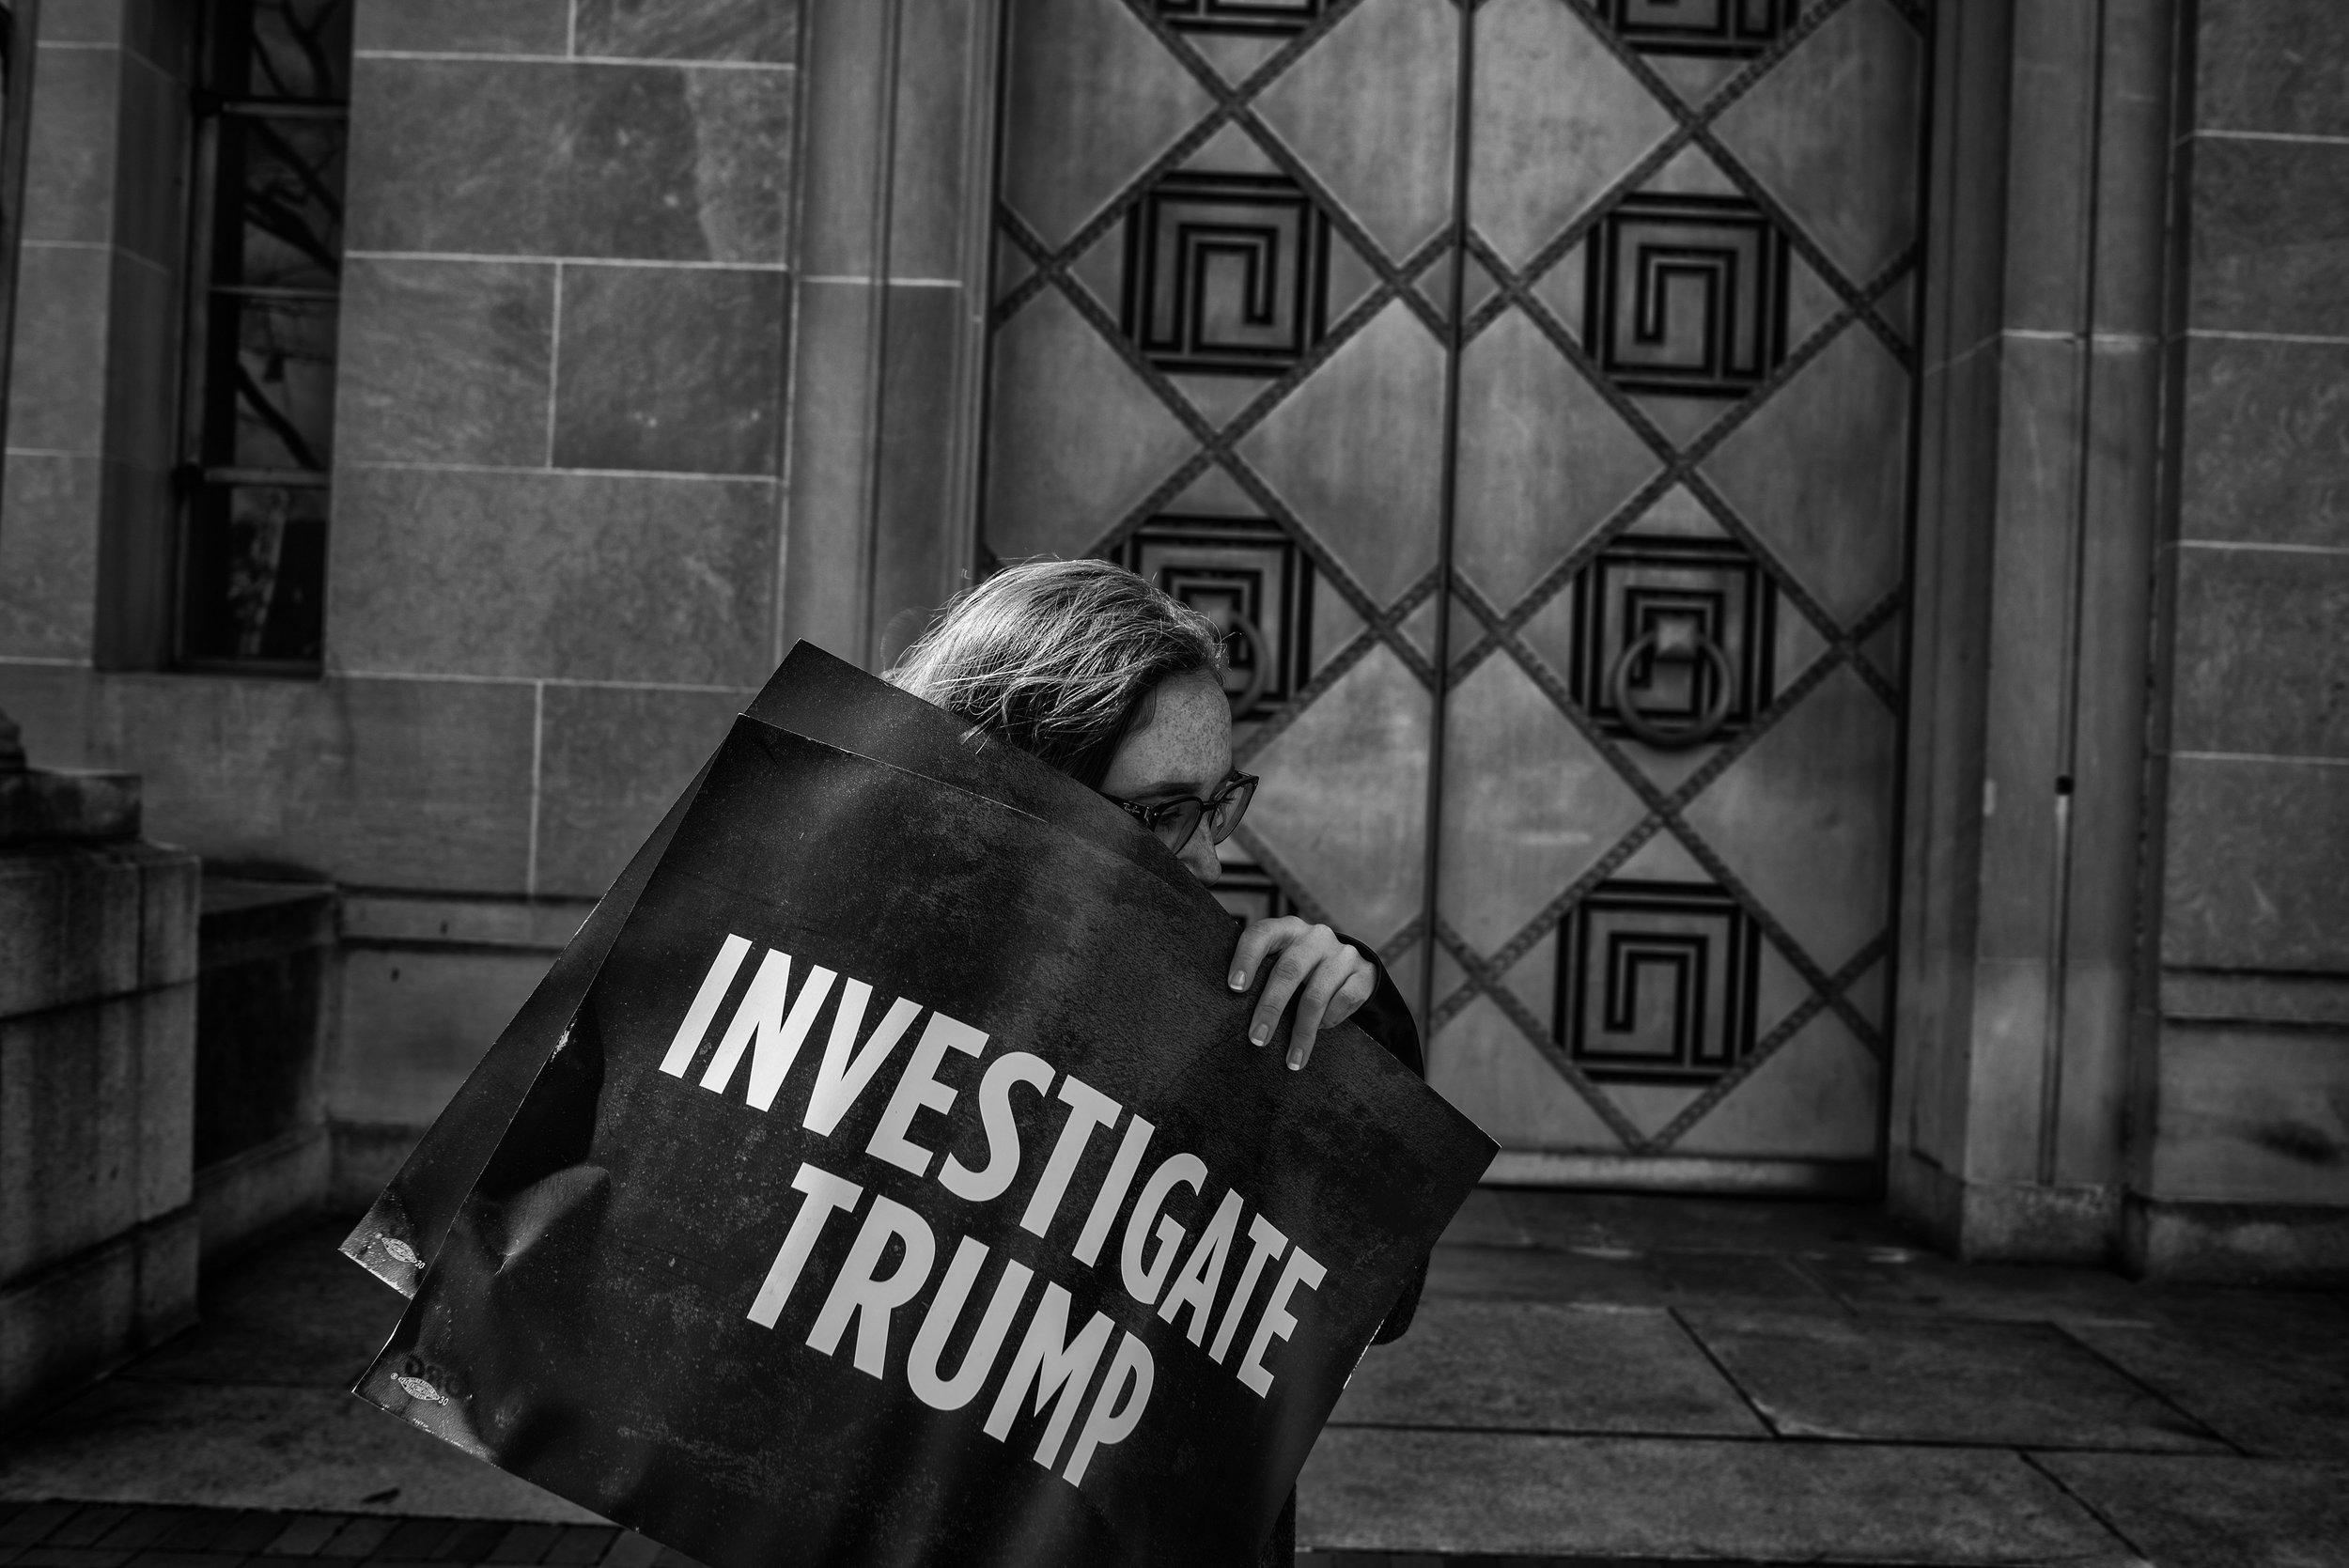 Day 42 : A protester outside the US Department of Justic demanding Attorney General Jeff Sessions recuse himself from any investigations into Russia, on March 2, 2017.